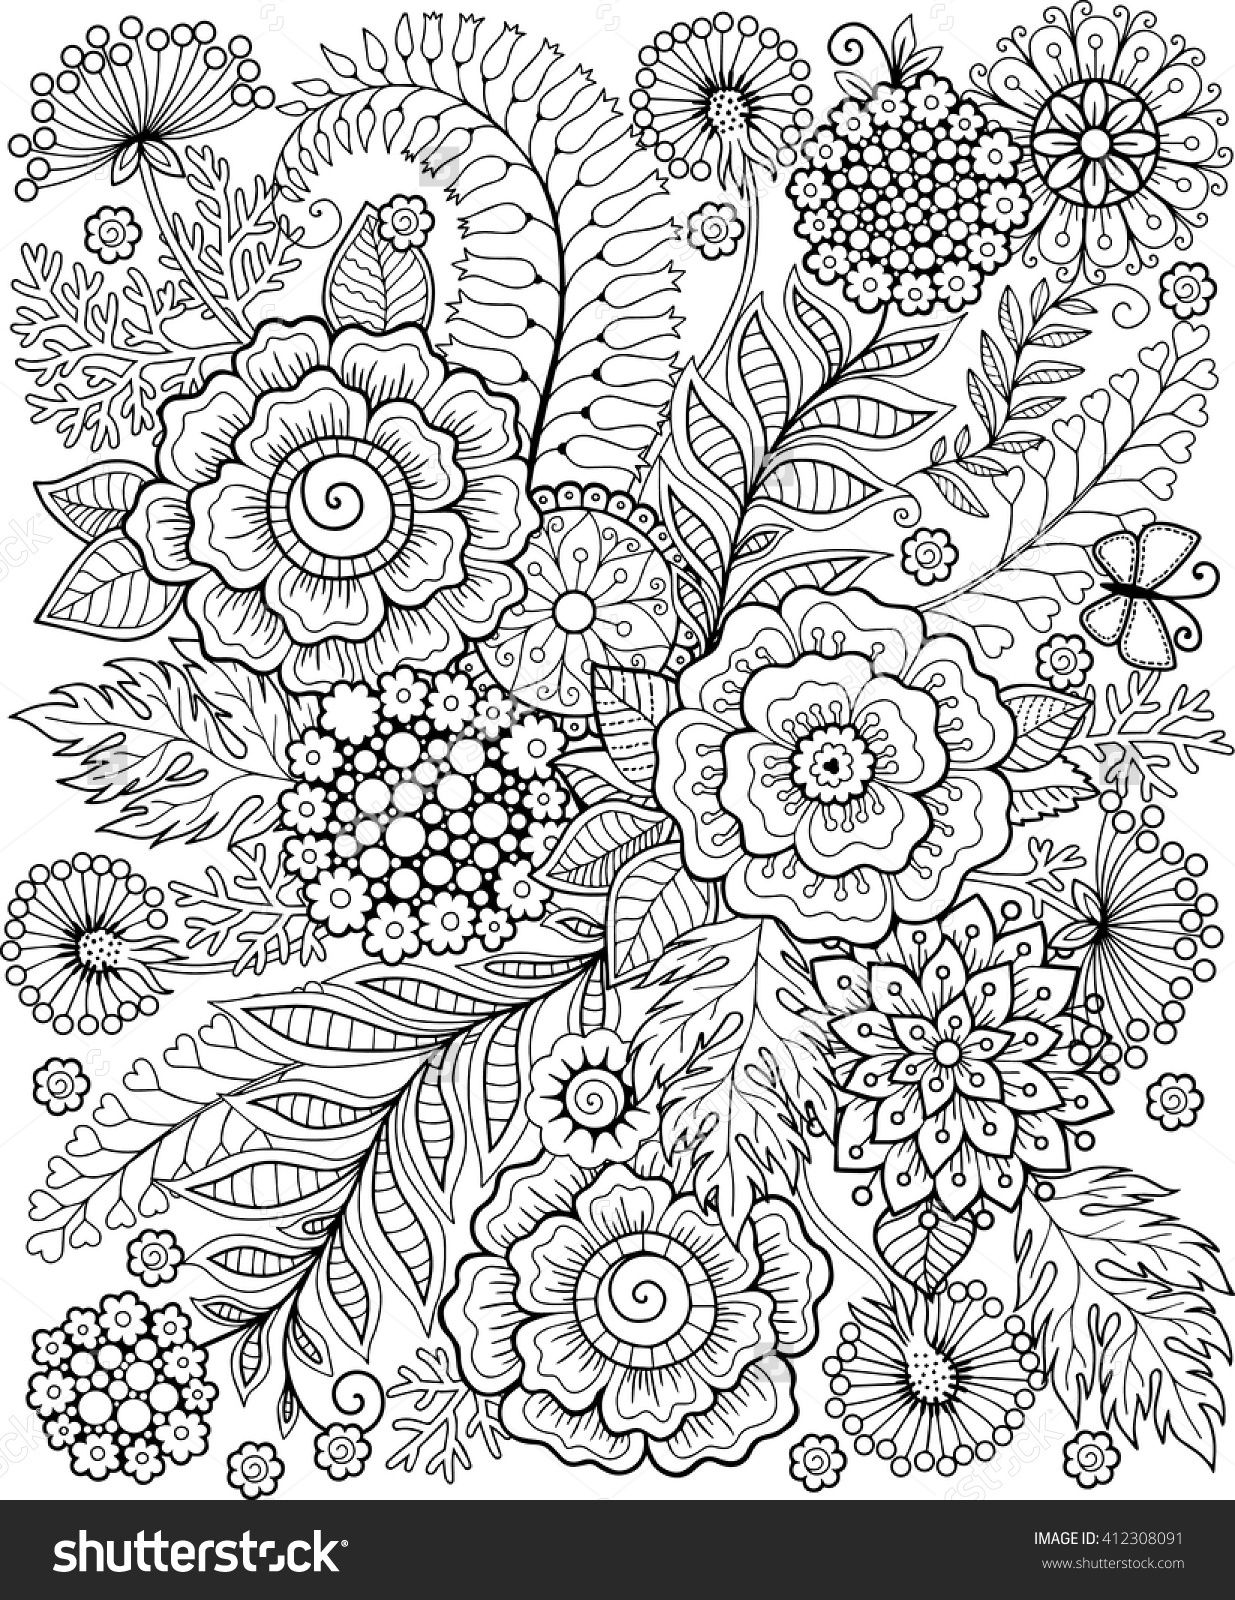 Coloring Book For Adults For Meditation And Relax Decorative Wild Flowers And Coloring Books Coloring Pages Flower Coloring Pages